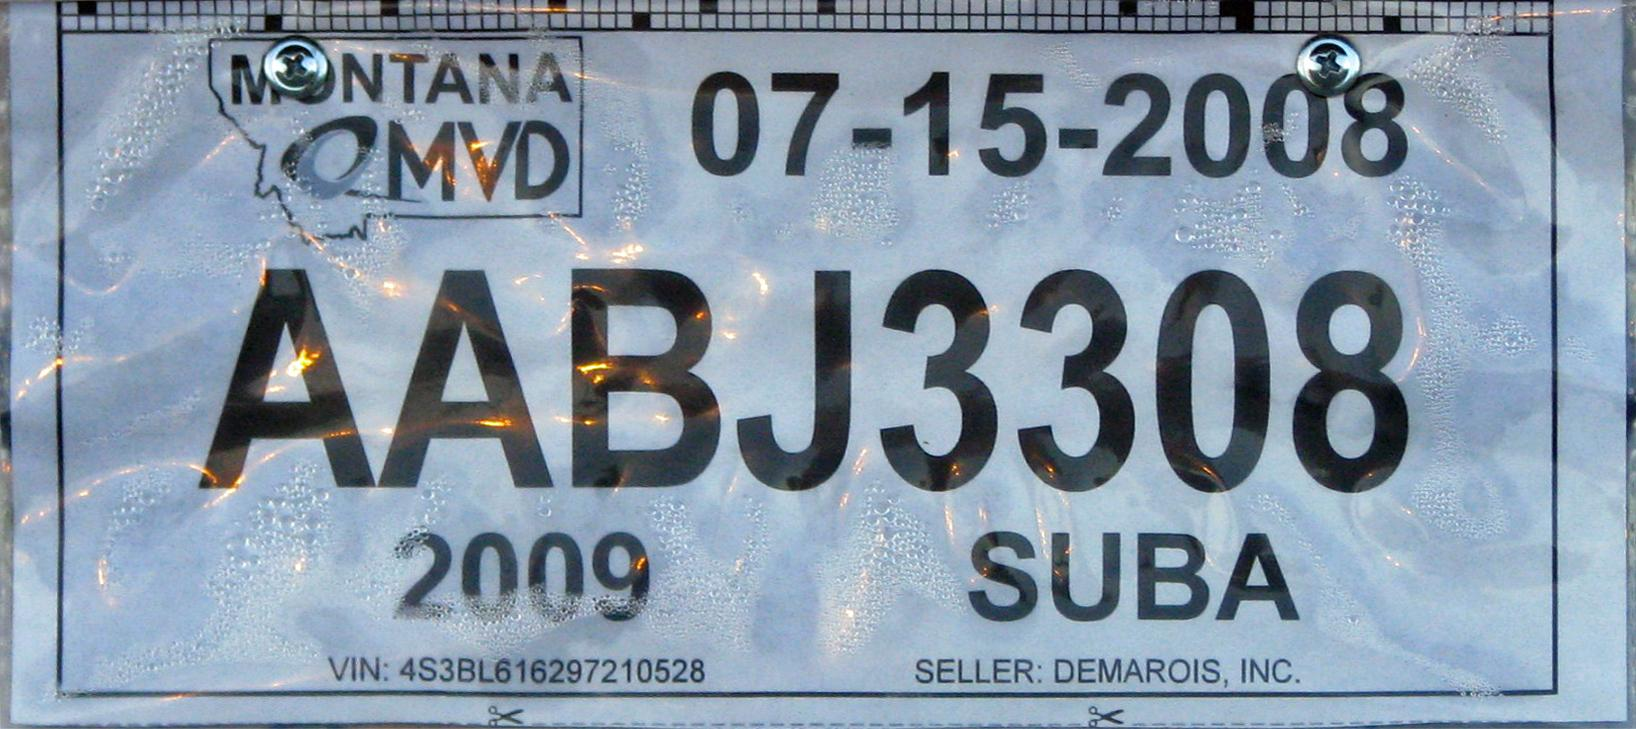 License Plate 9751